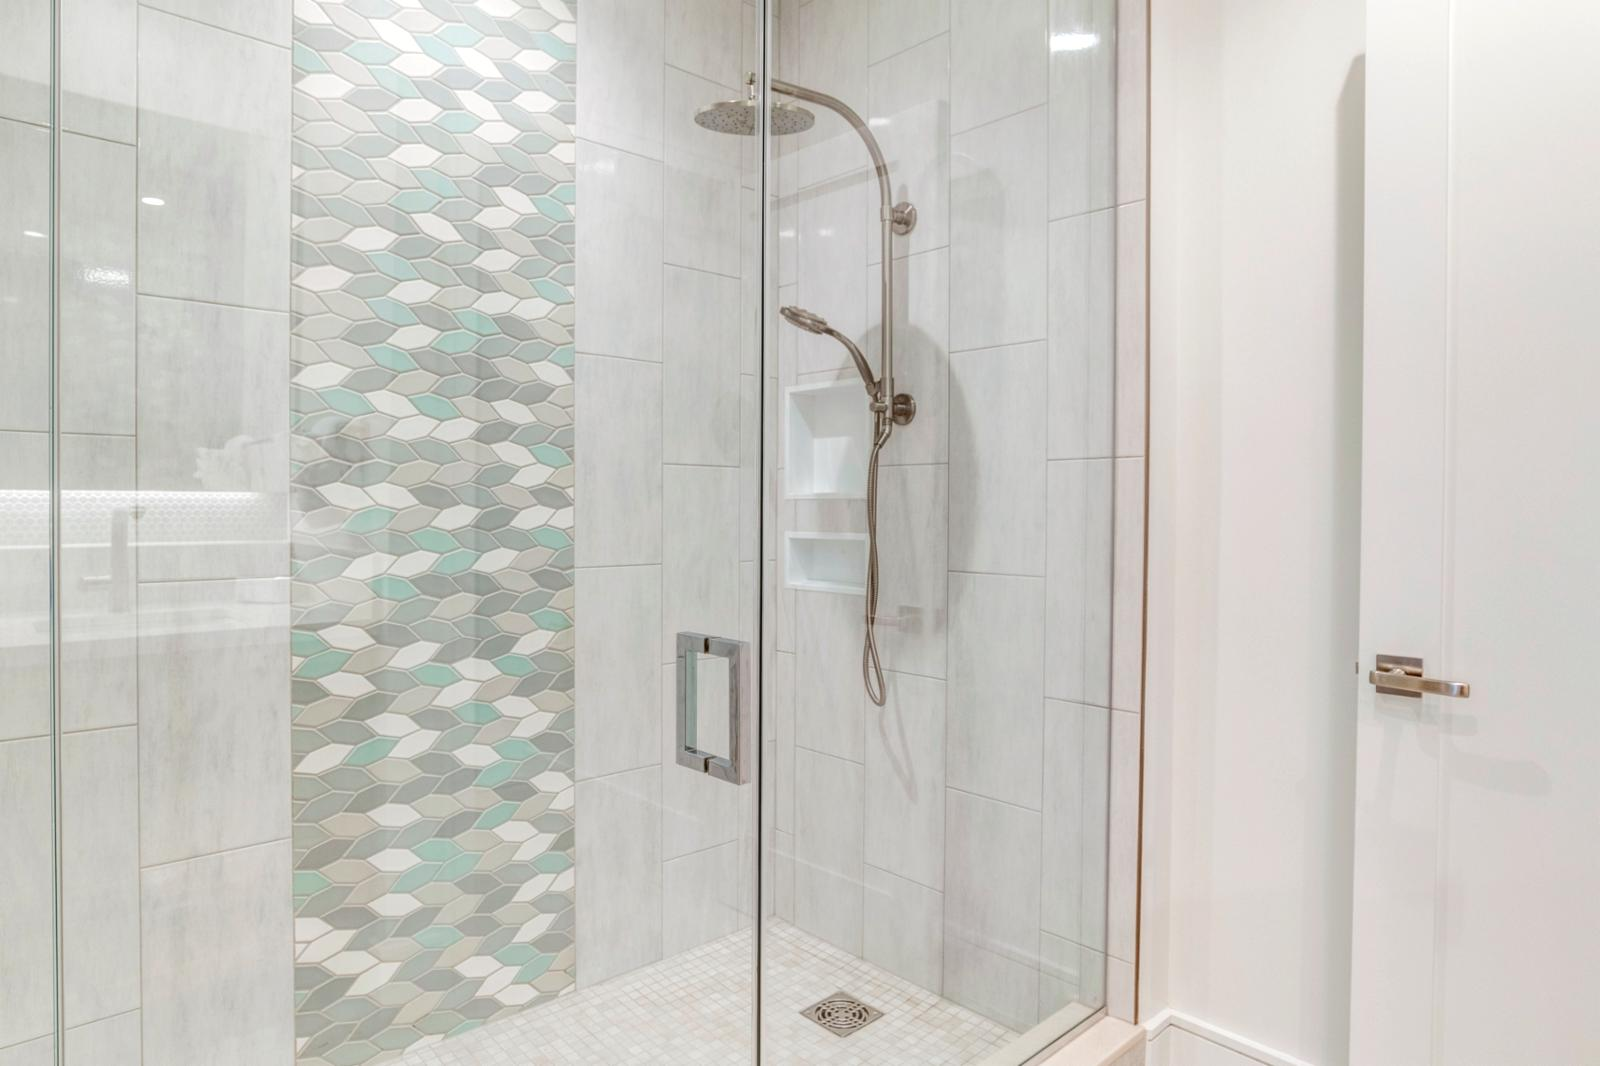 Beautiful shower and backsplash